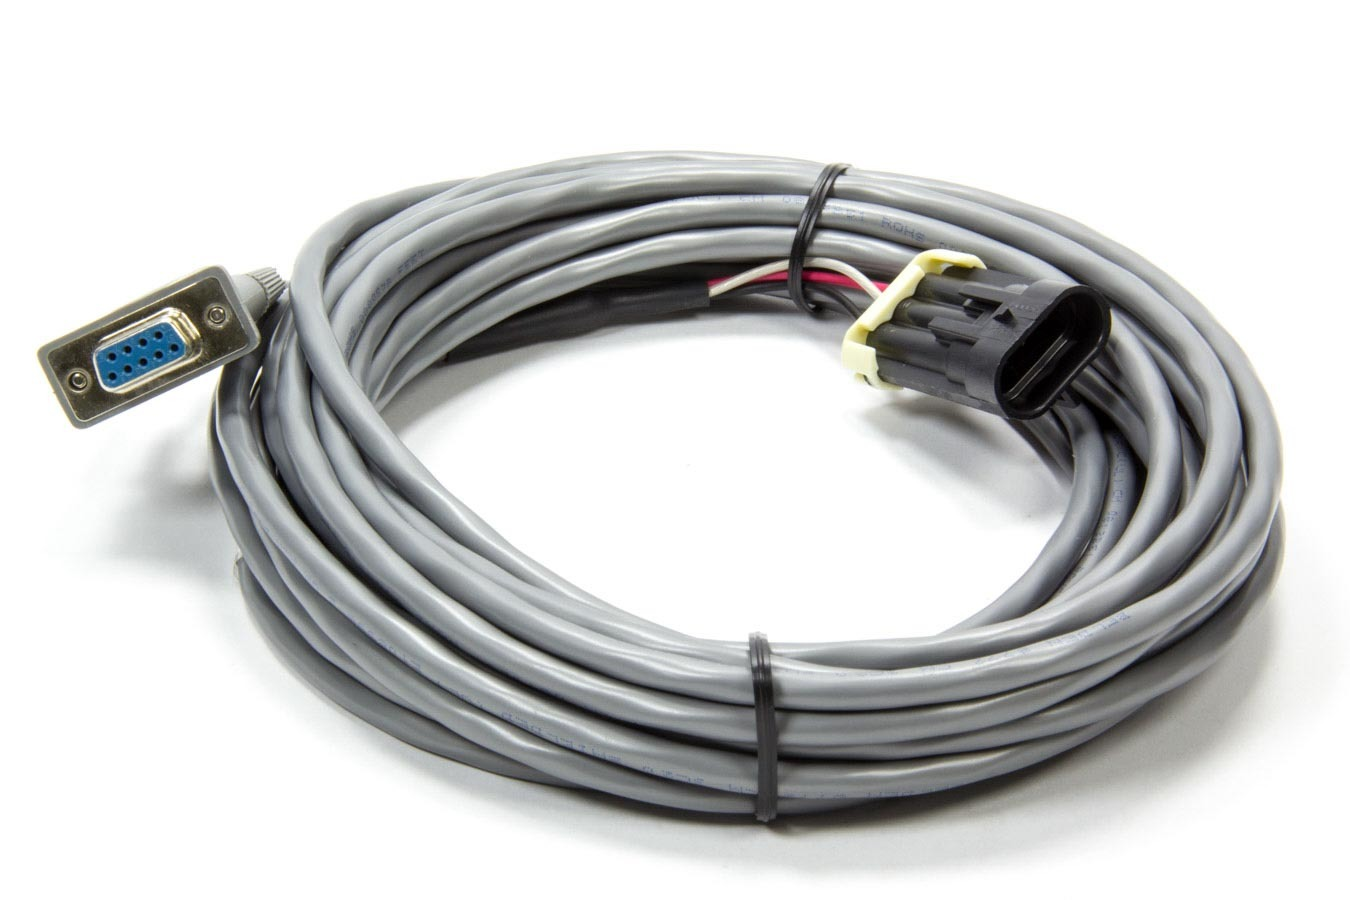 Fast Electronics 308014 Data Transfer Cable, PC to ECU, 25 ft, F.A.S.T XFI 2.0, Each